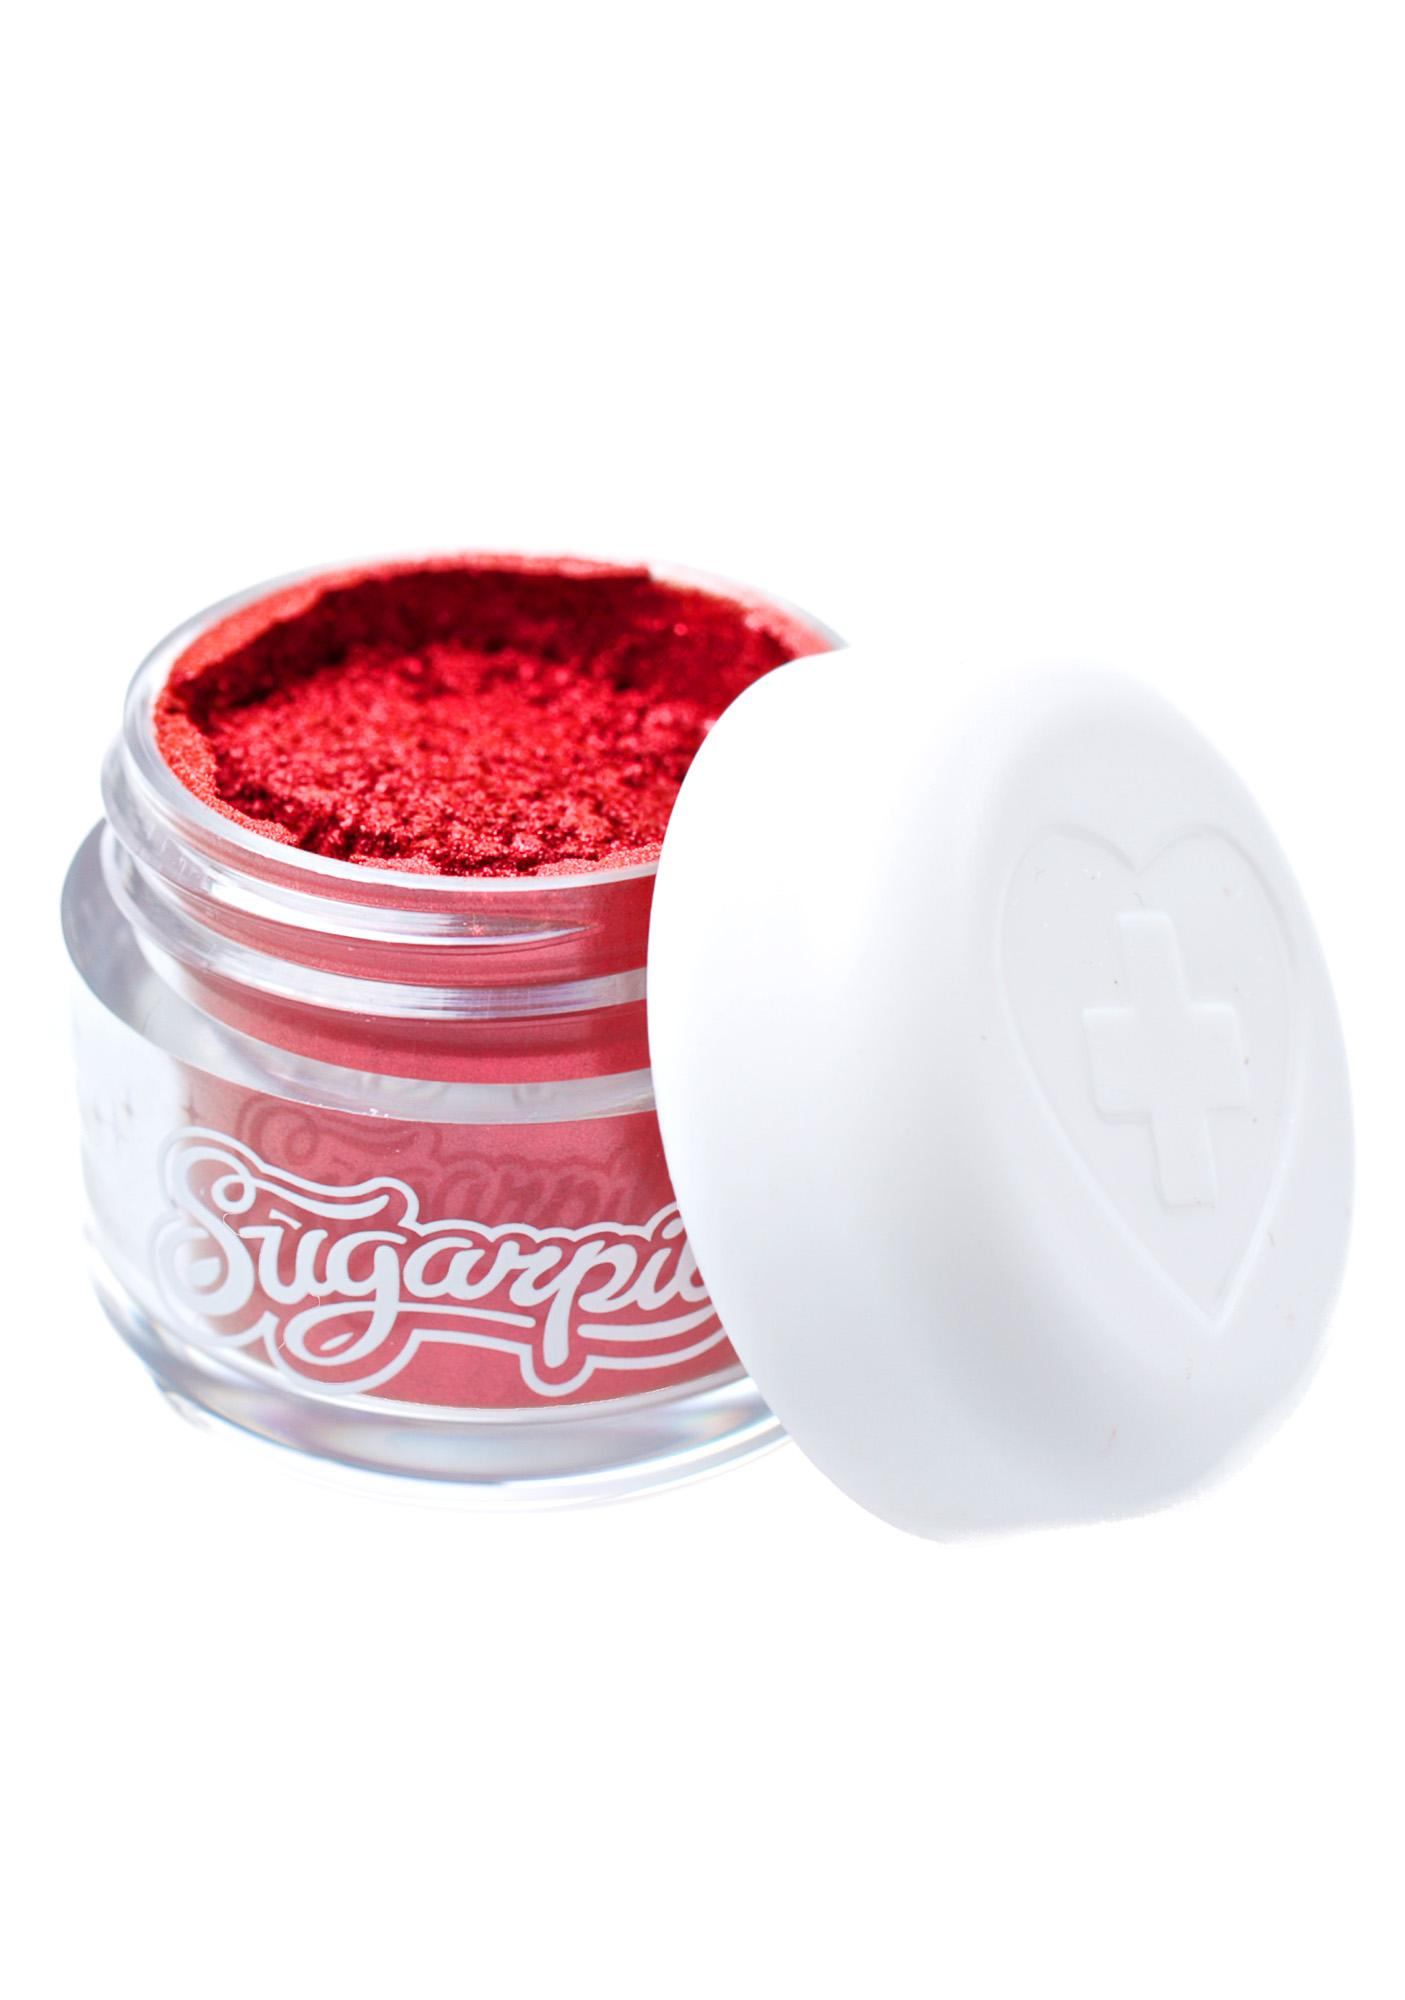 Sugarpill Asylum Loose Eyeshadow